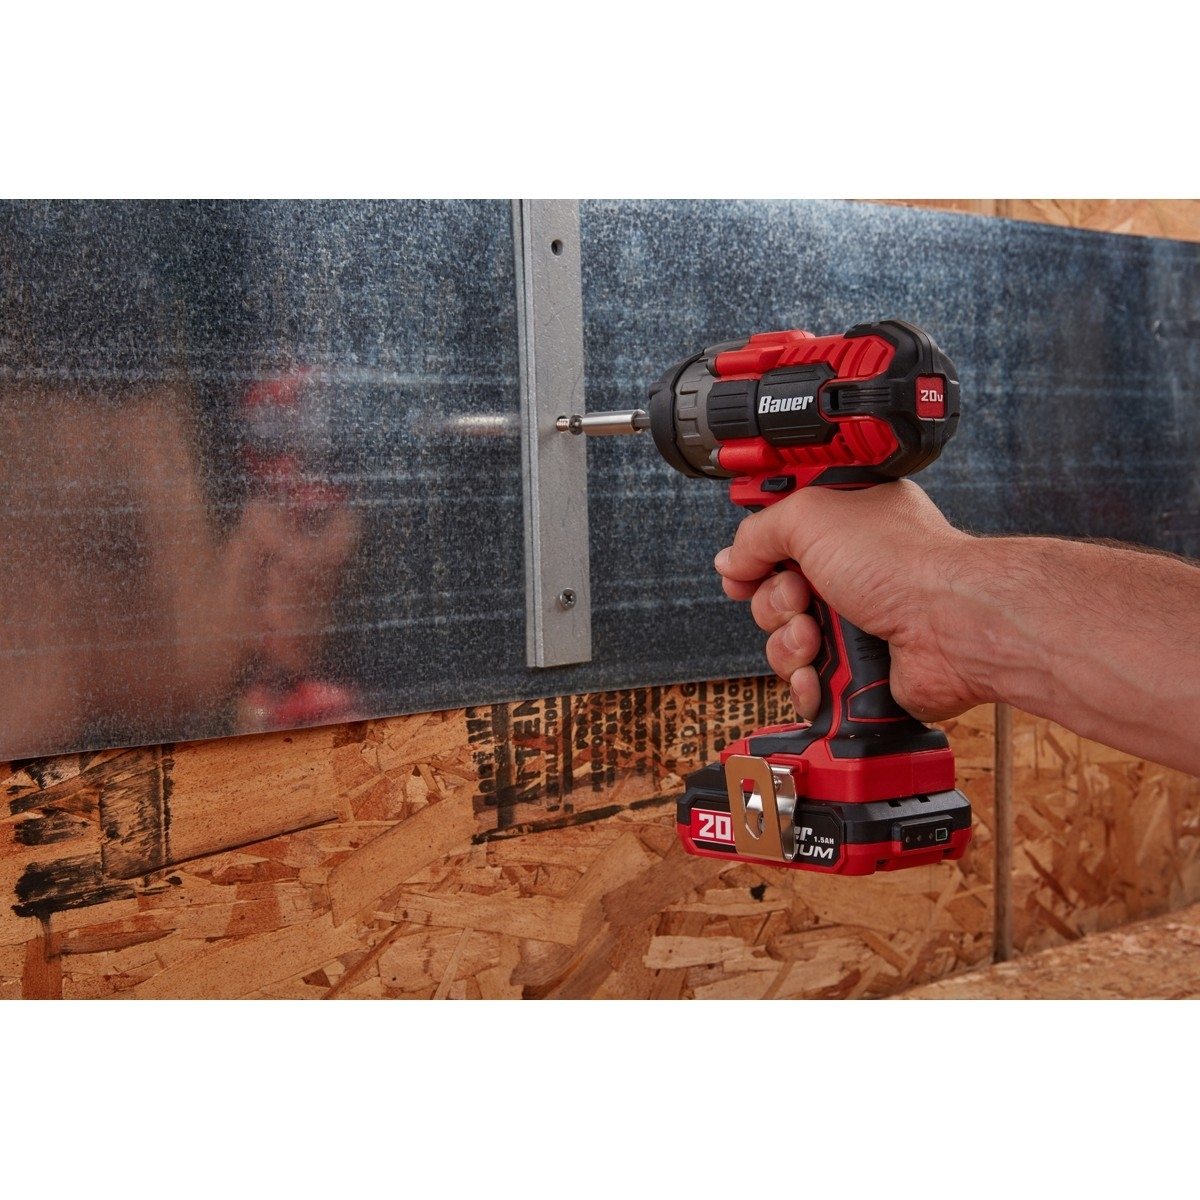 Nearest Battery Store >> 20V Hypermax™ Lithium 1/4 in. Hex Compact Impact Driver, Kit